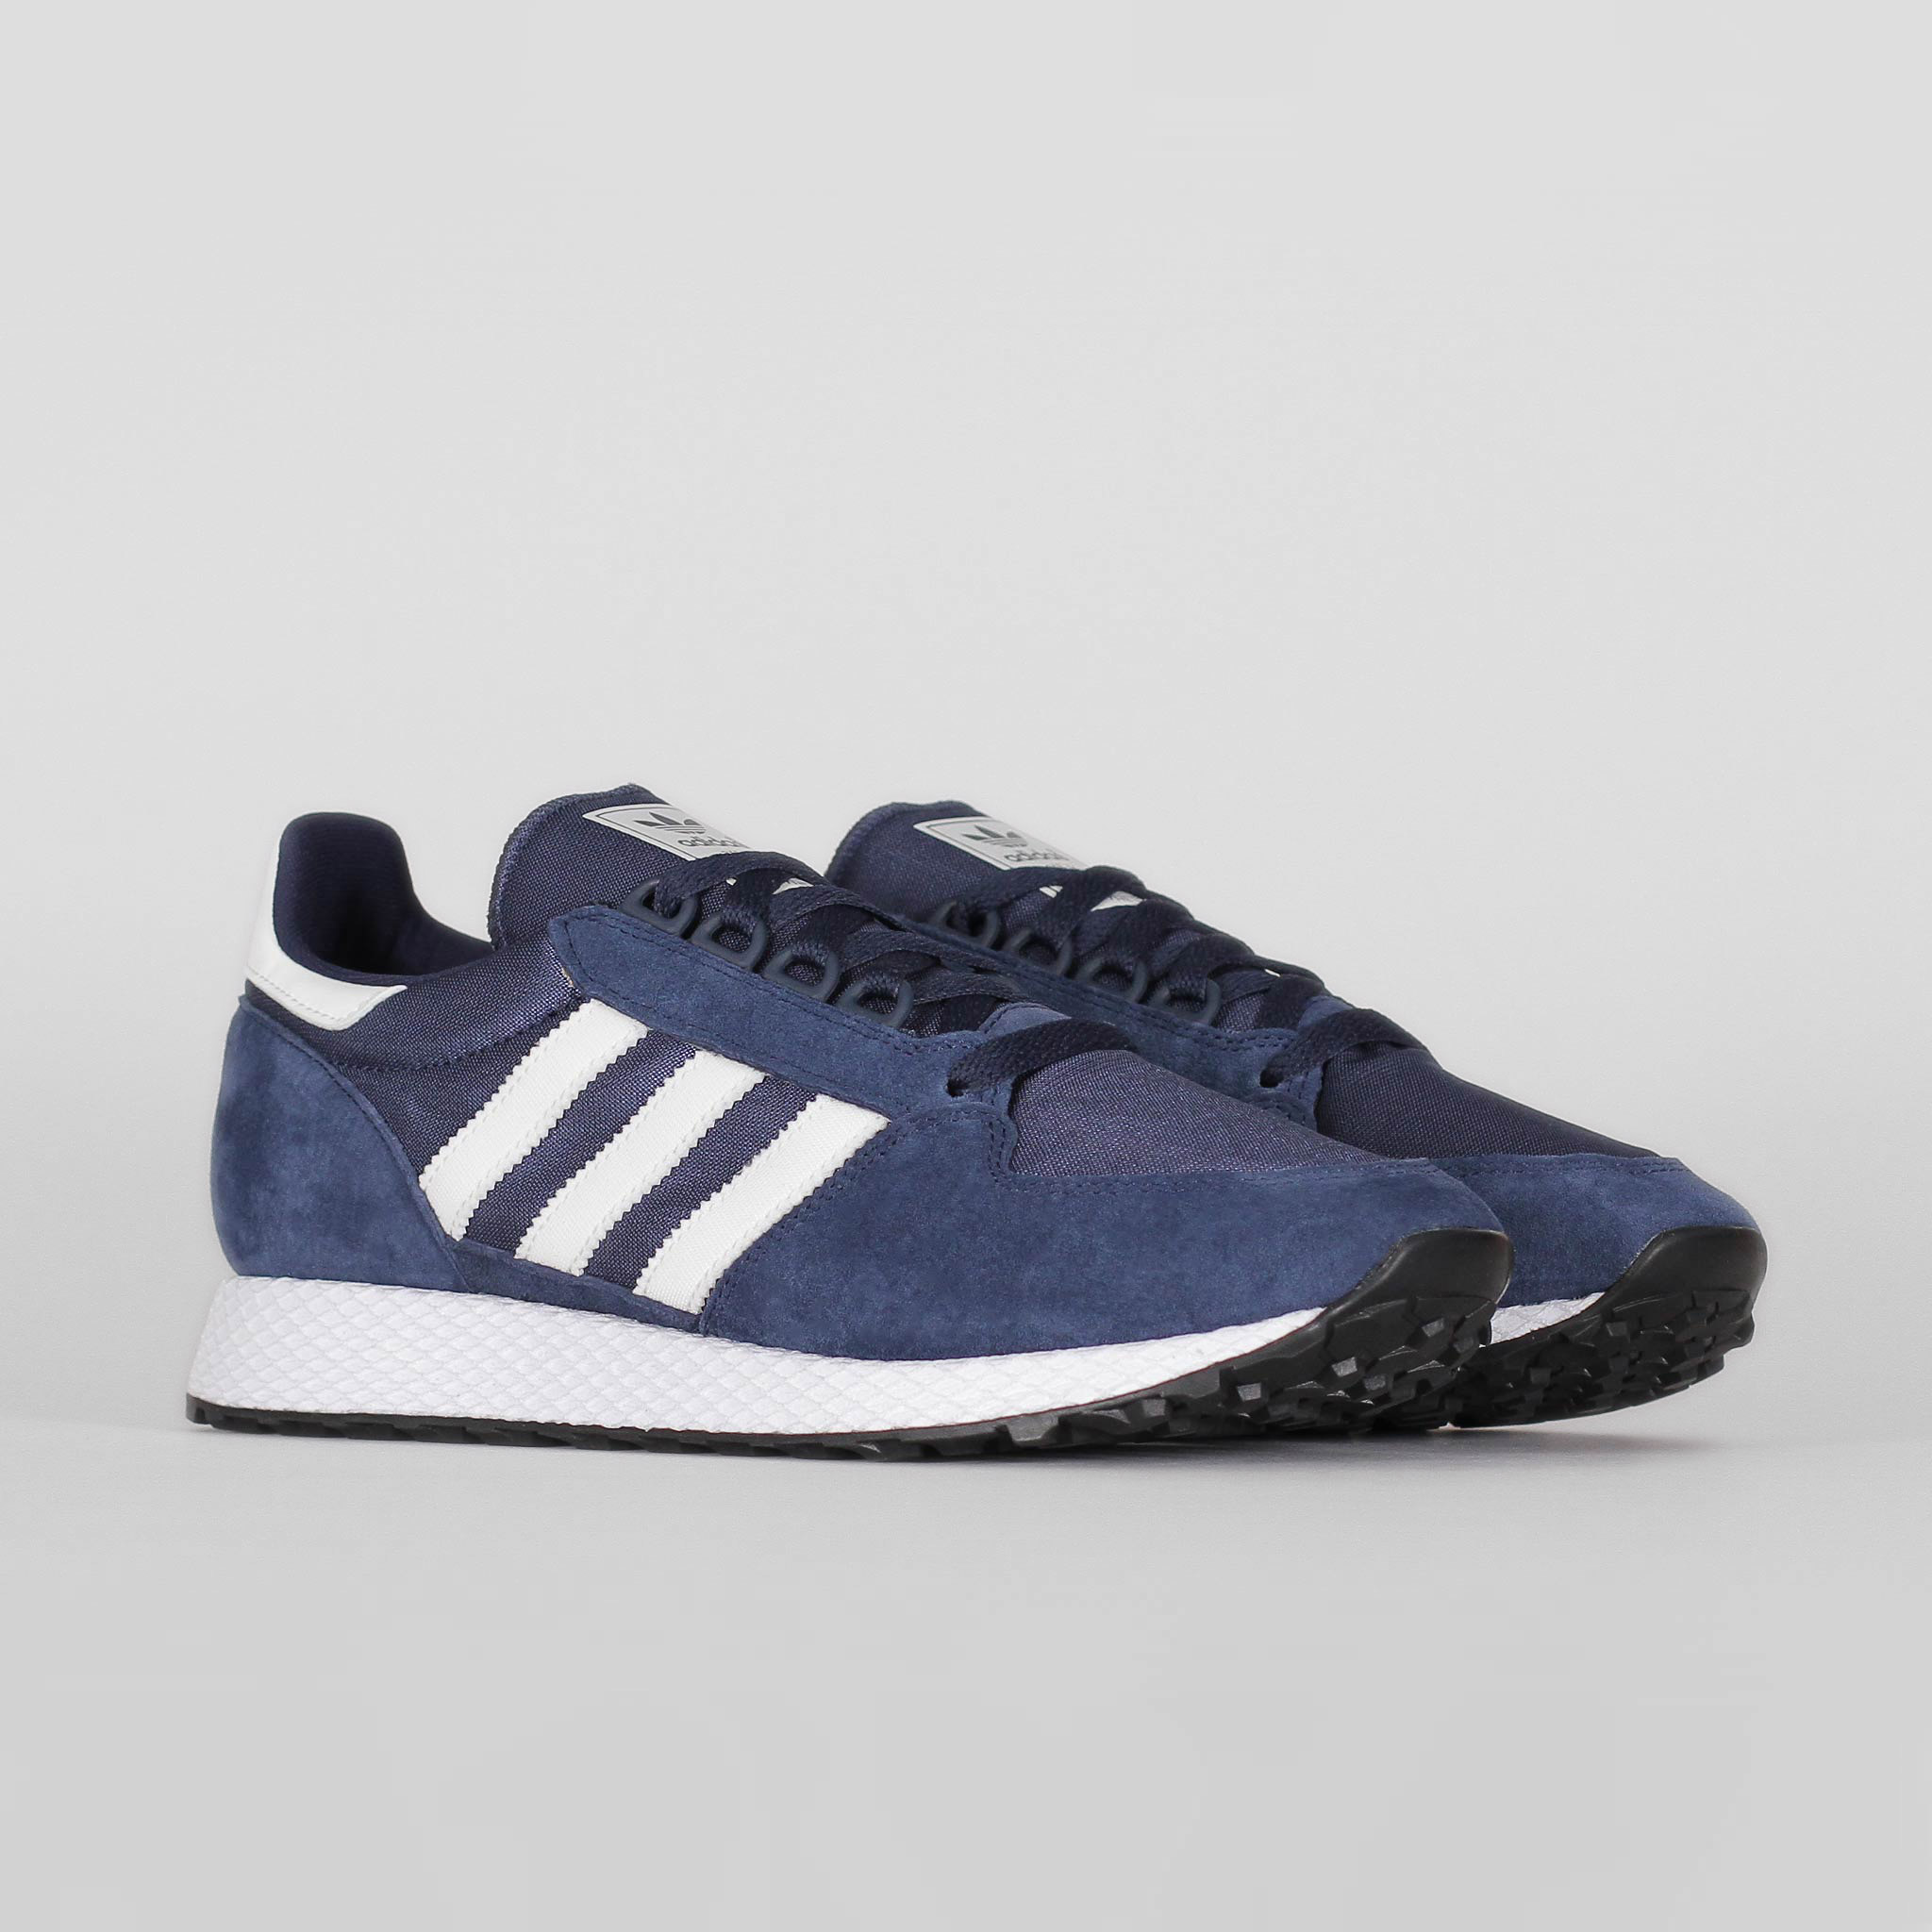 Shelta Adidas Originals Forest Grove Navy Cg5675